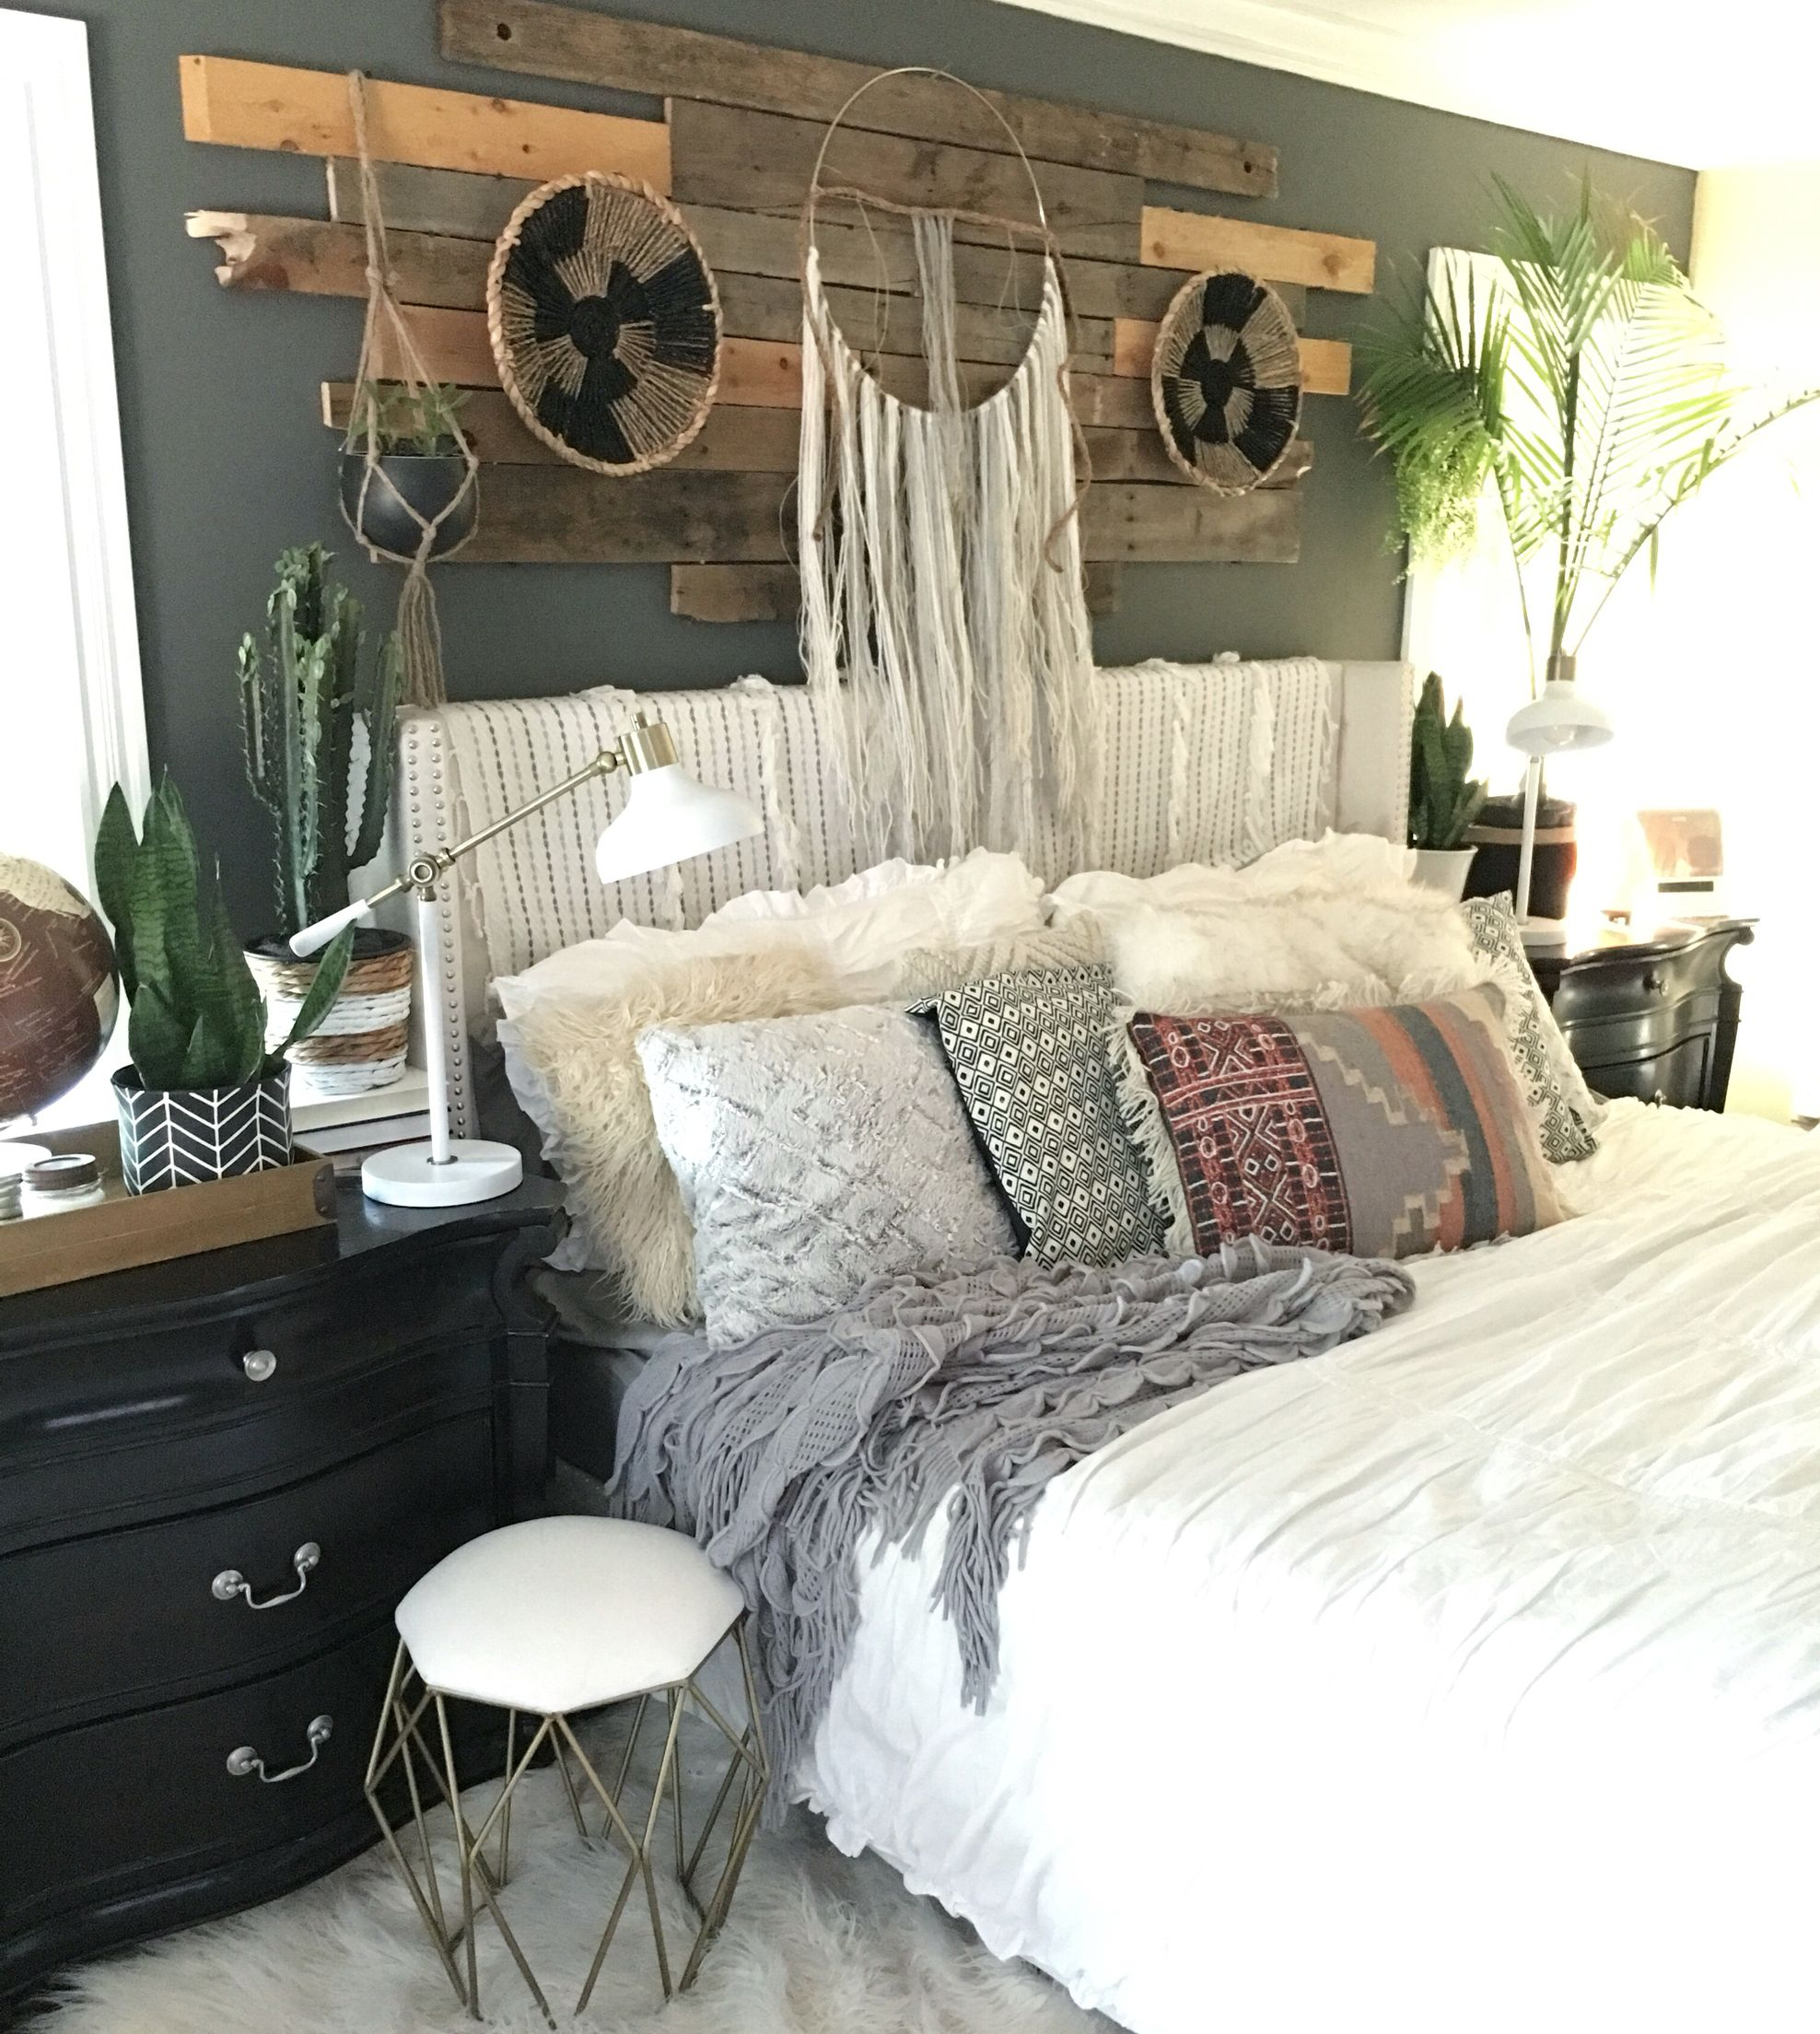 size ideas gypsy decorating decorations couch designs bedroom boho shabby super bedrooms of ideasbohemian full picture bohemianbohemian on chic decor concept bohemian